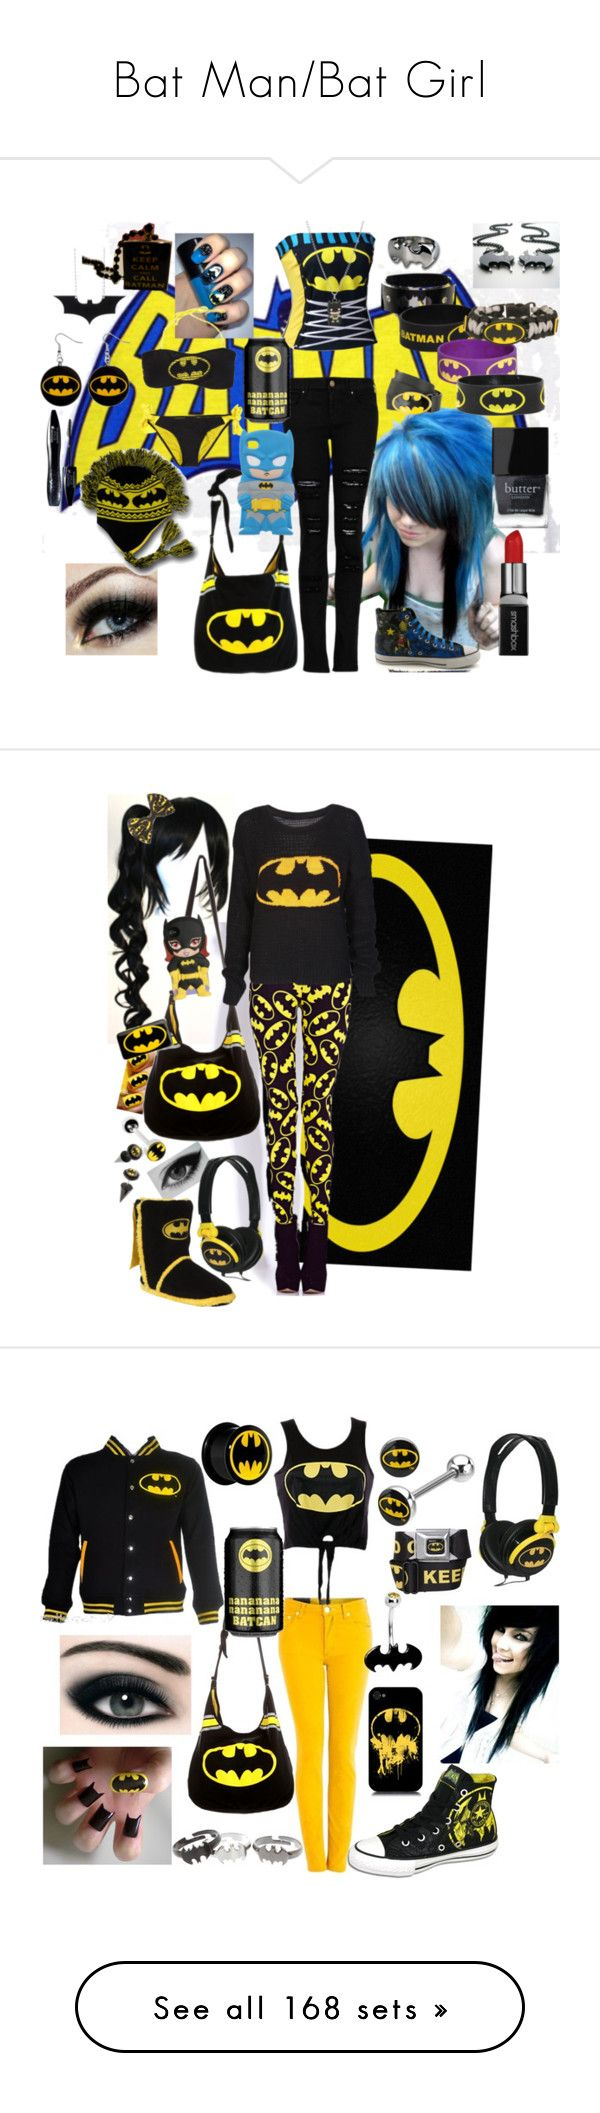 """Bat Man/Bat Girl"" by neverland-is-just-a-dream-away ❤ liked on Polyvore featuring art, Forever 21, DC Shoes, American Eagle Outfitters, Patagonia, Masquerade, Ann Demeulemeester, Rick Owens, Zara and Gucci"